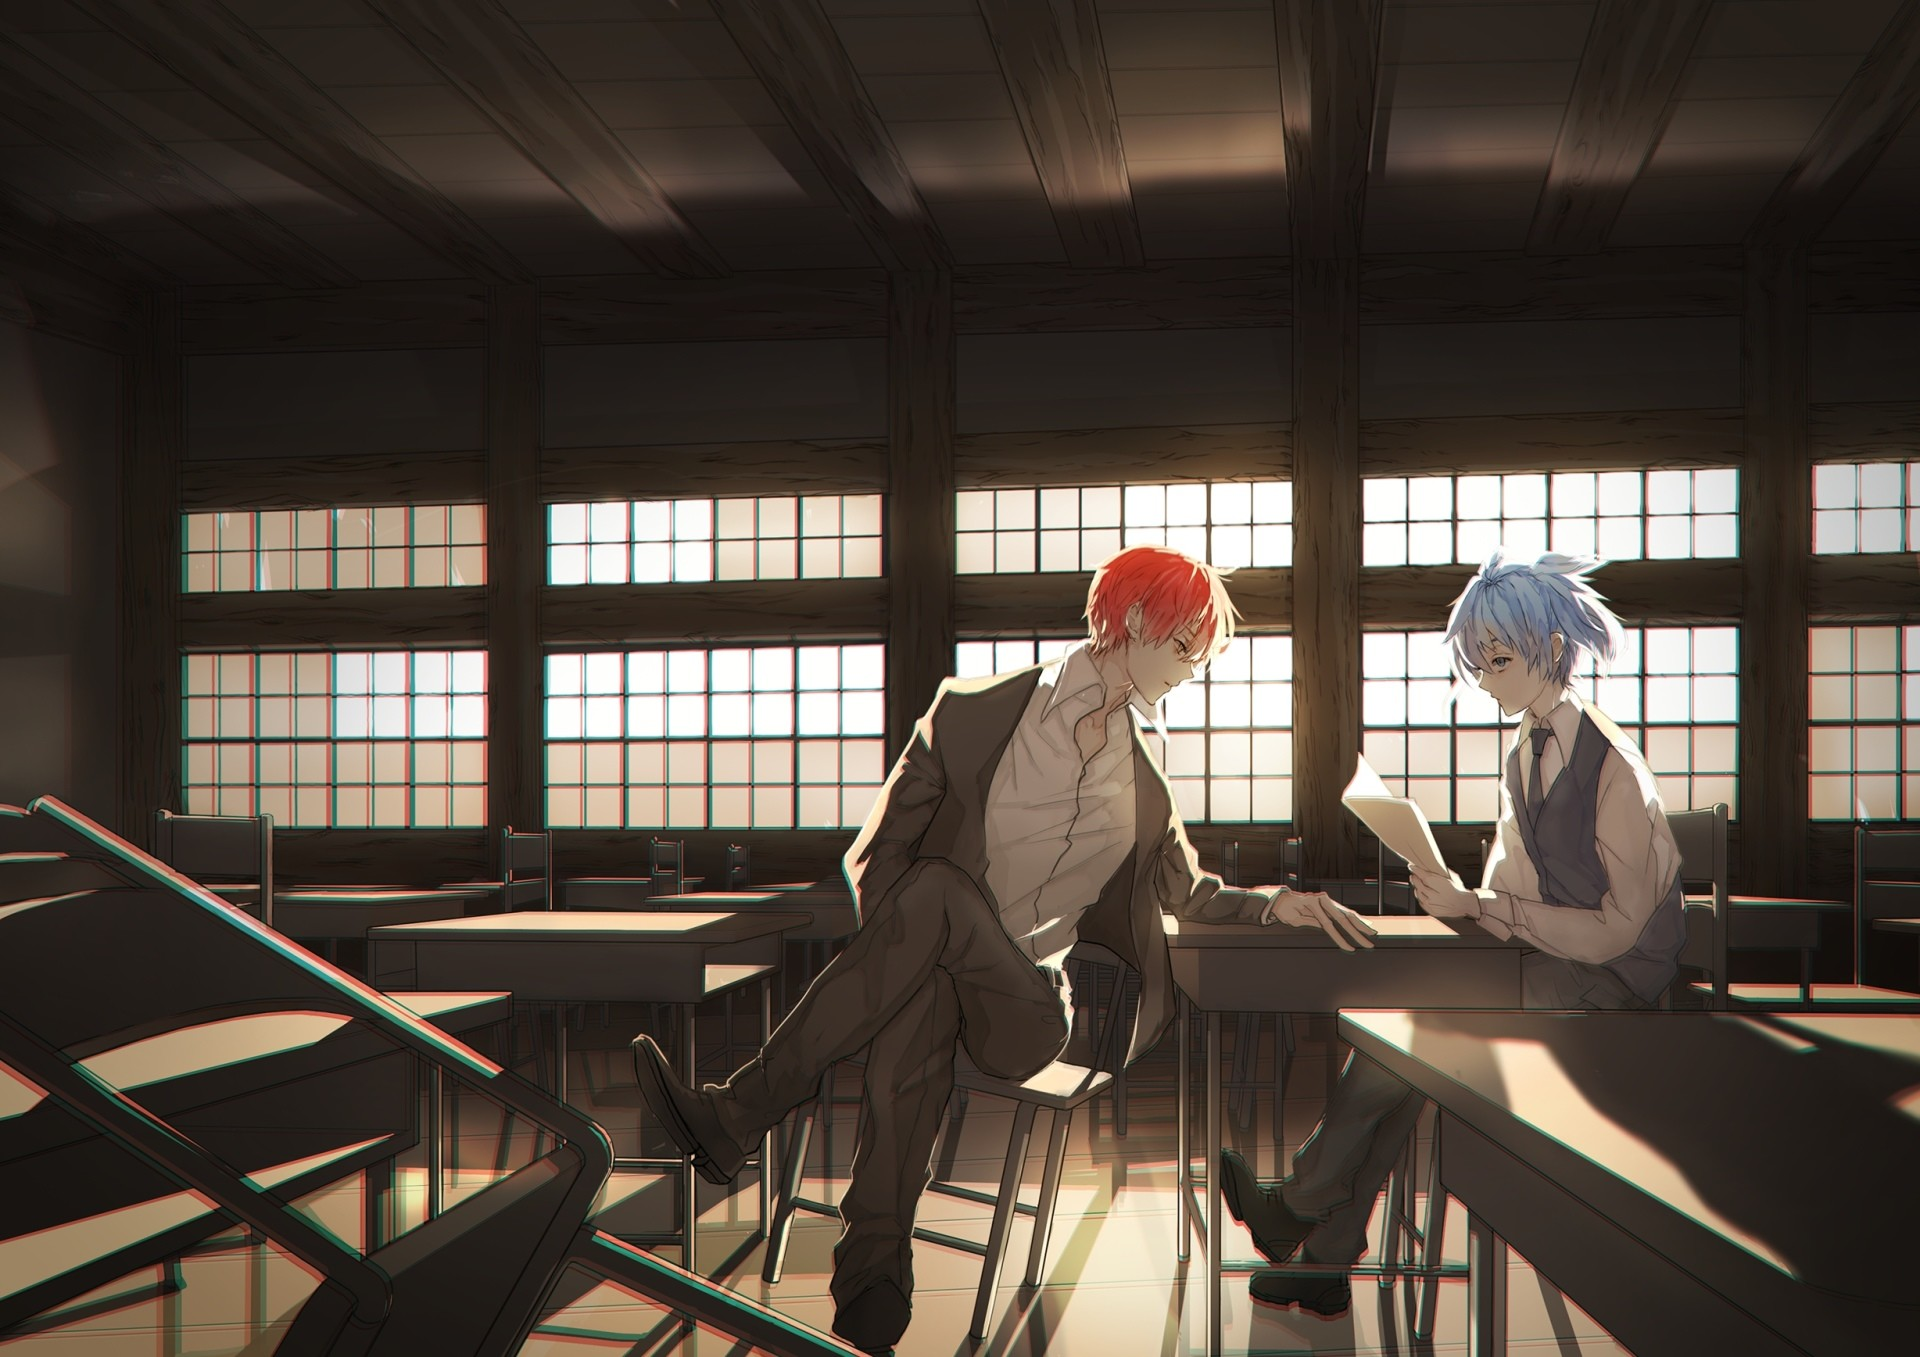 1920x1357 Anime Assassination Classroom Karma Akabane Nagisa Shiota Wallpaper